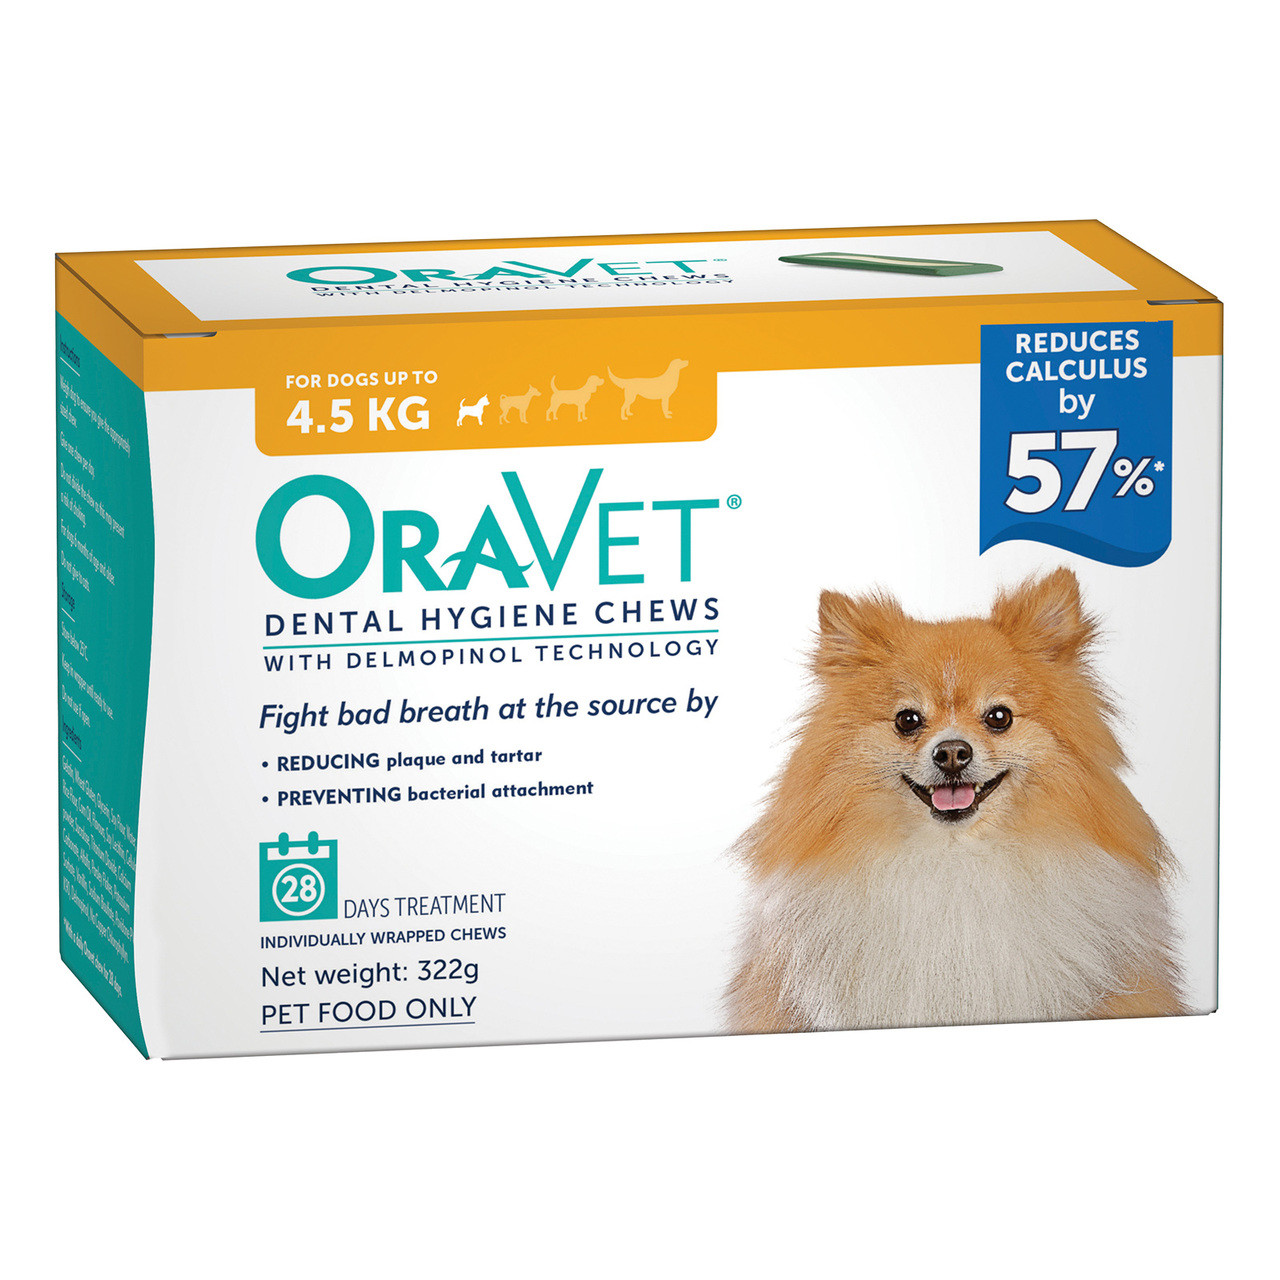 Oravet Dental Hygiene Chews for Extra Small Dogs (<4 5kg) (28)